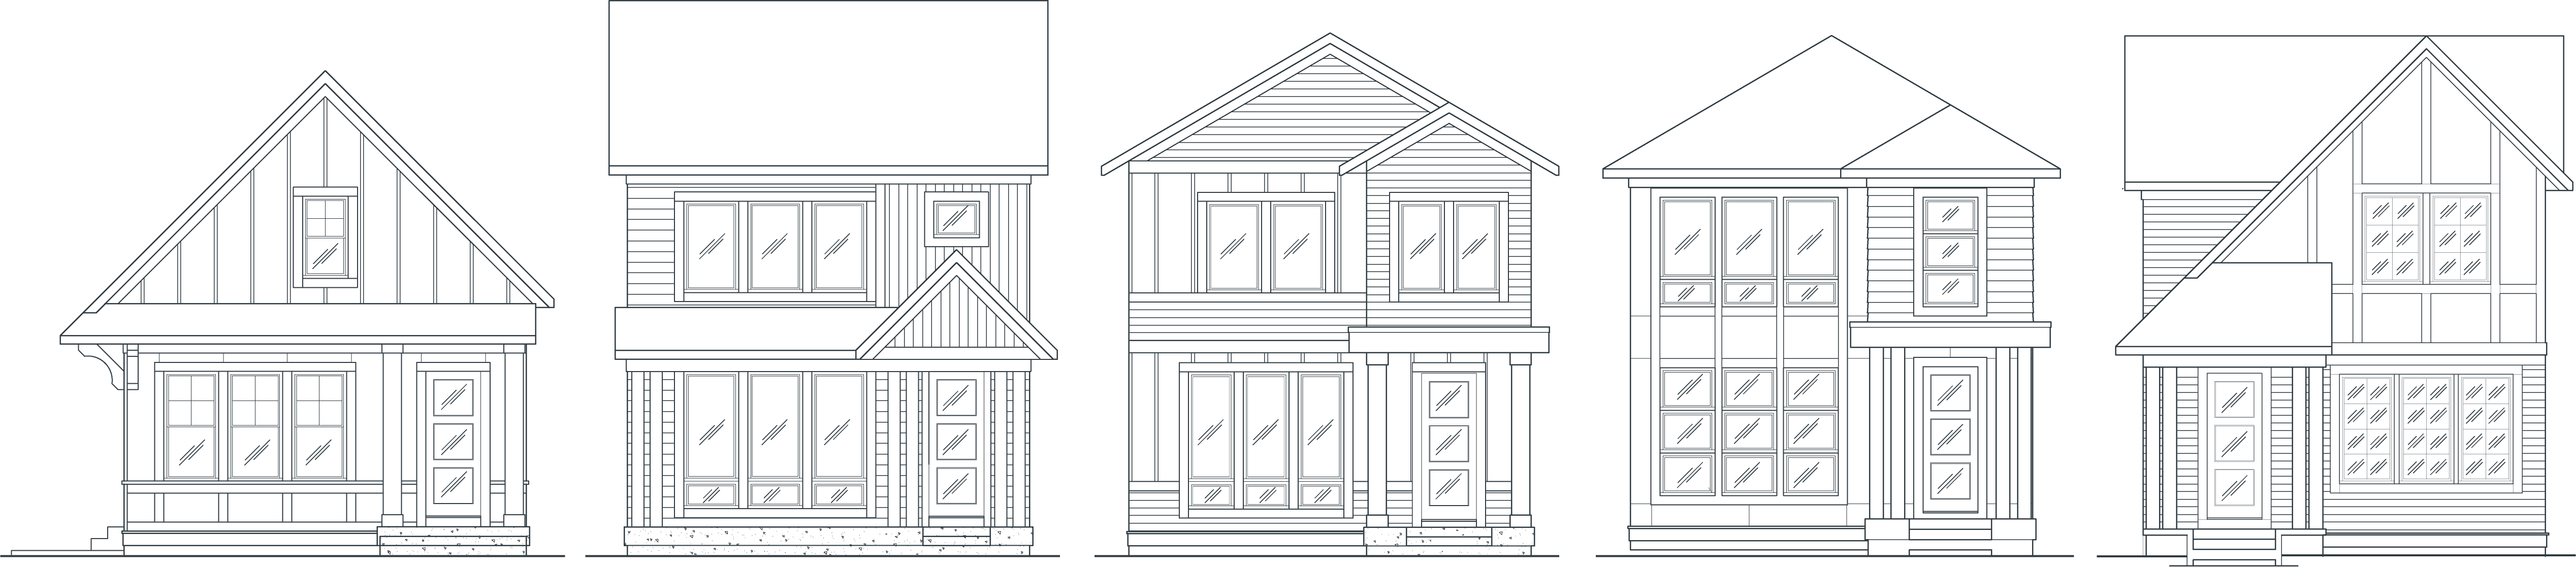 Revival Front Elevations of homes